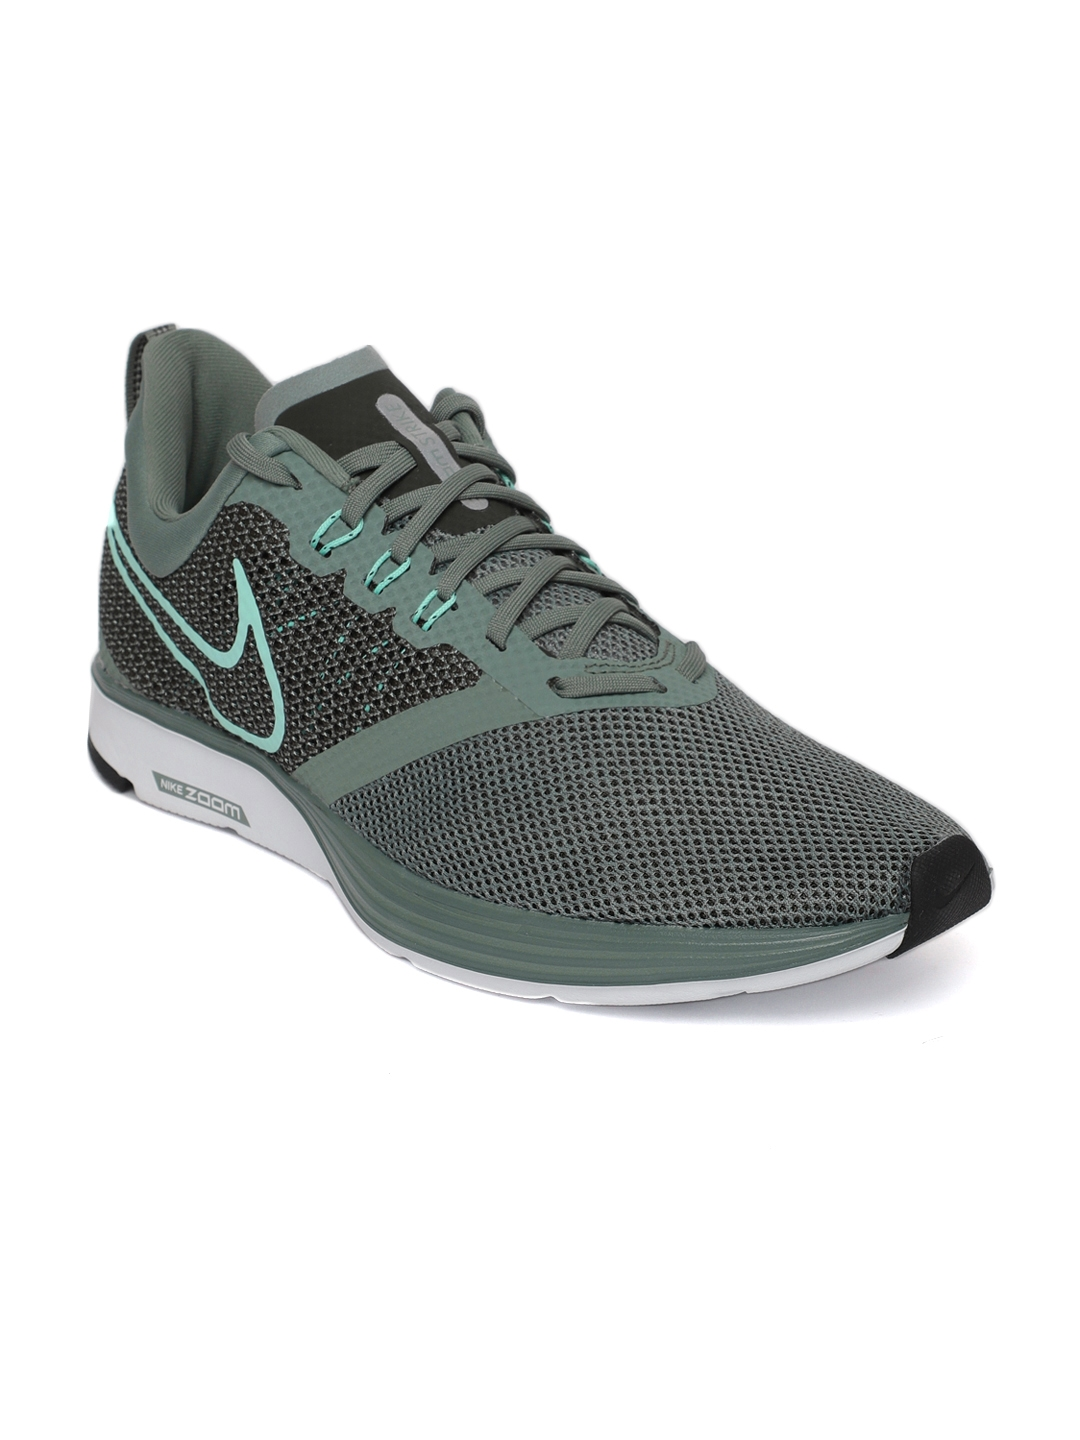 48a7e9e23a3d Buy Nike Men Green Zoom Strike Running Shoes - Sports Shoes for Men ...